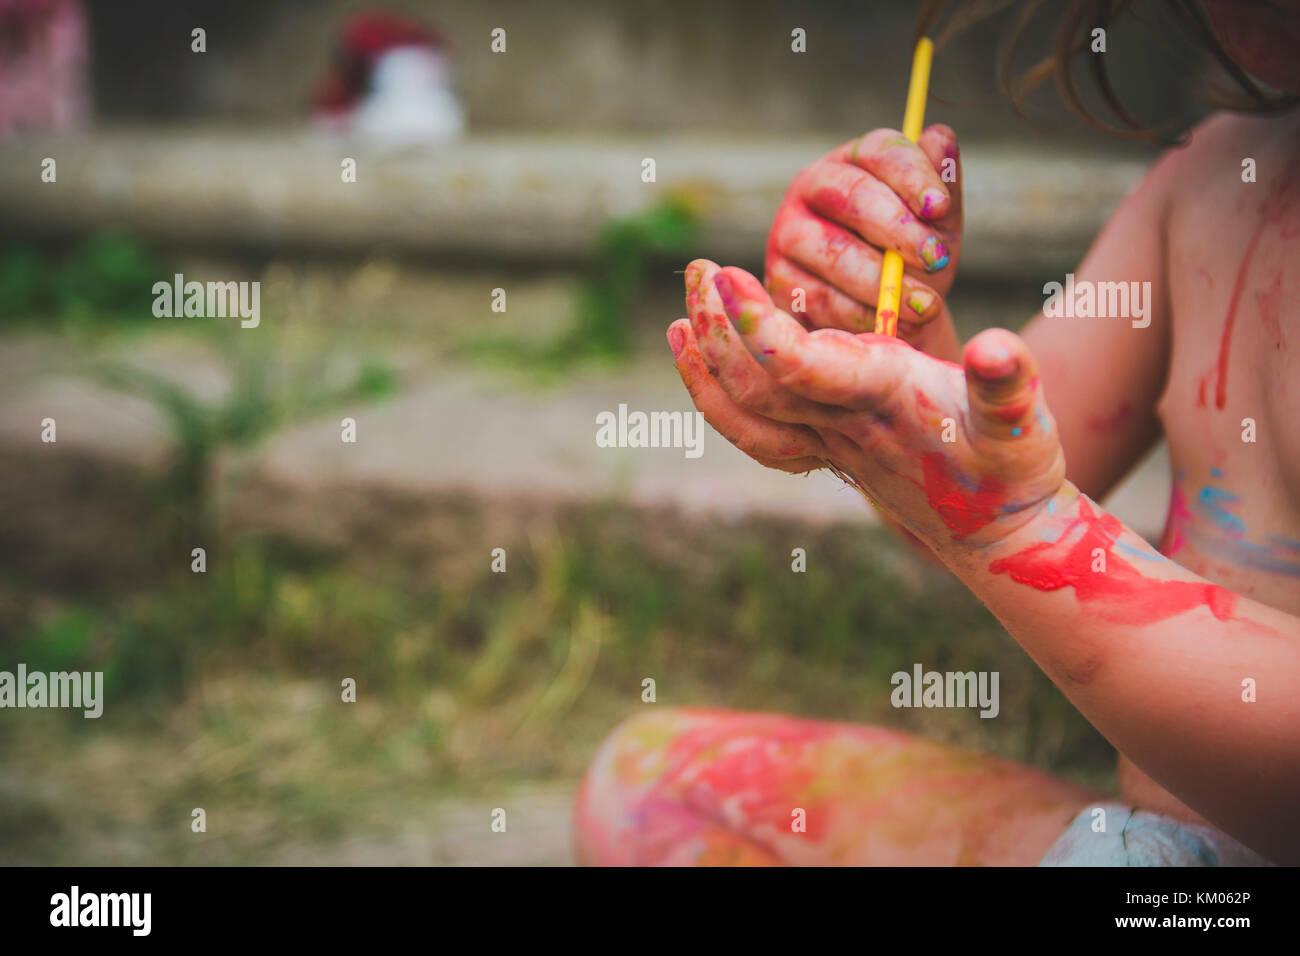 A toddler paints on her hands. - Stock Image